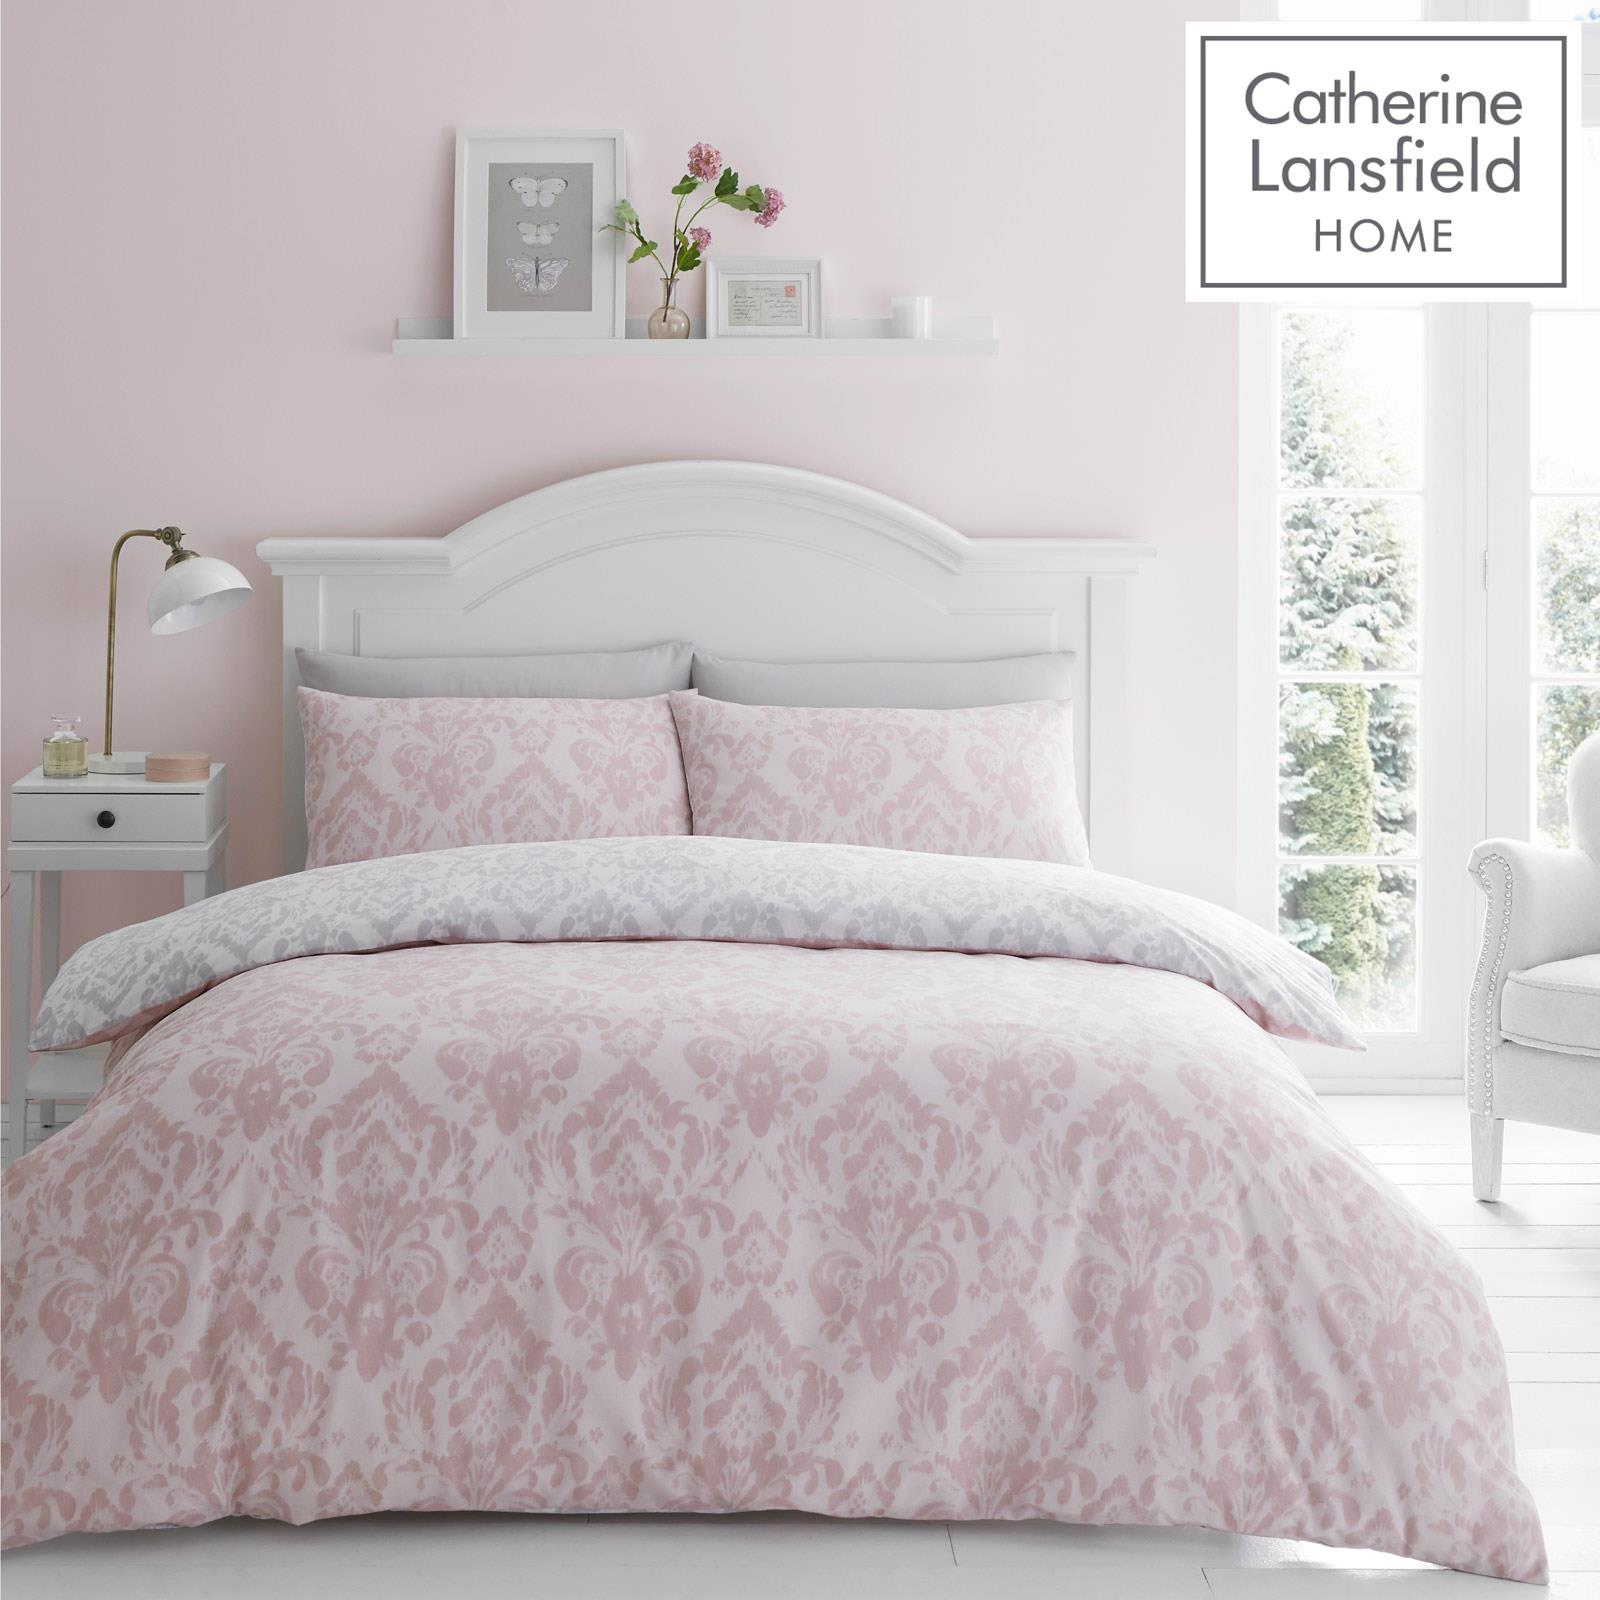 Catherine Lansfield Damask Blush Duvet Covers Pink Grey Quilt Cover Bedding Sets Ebay